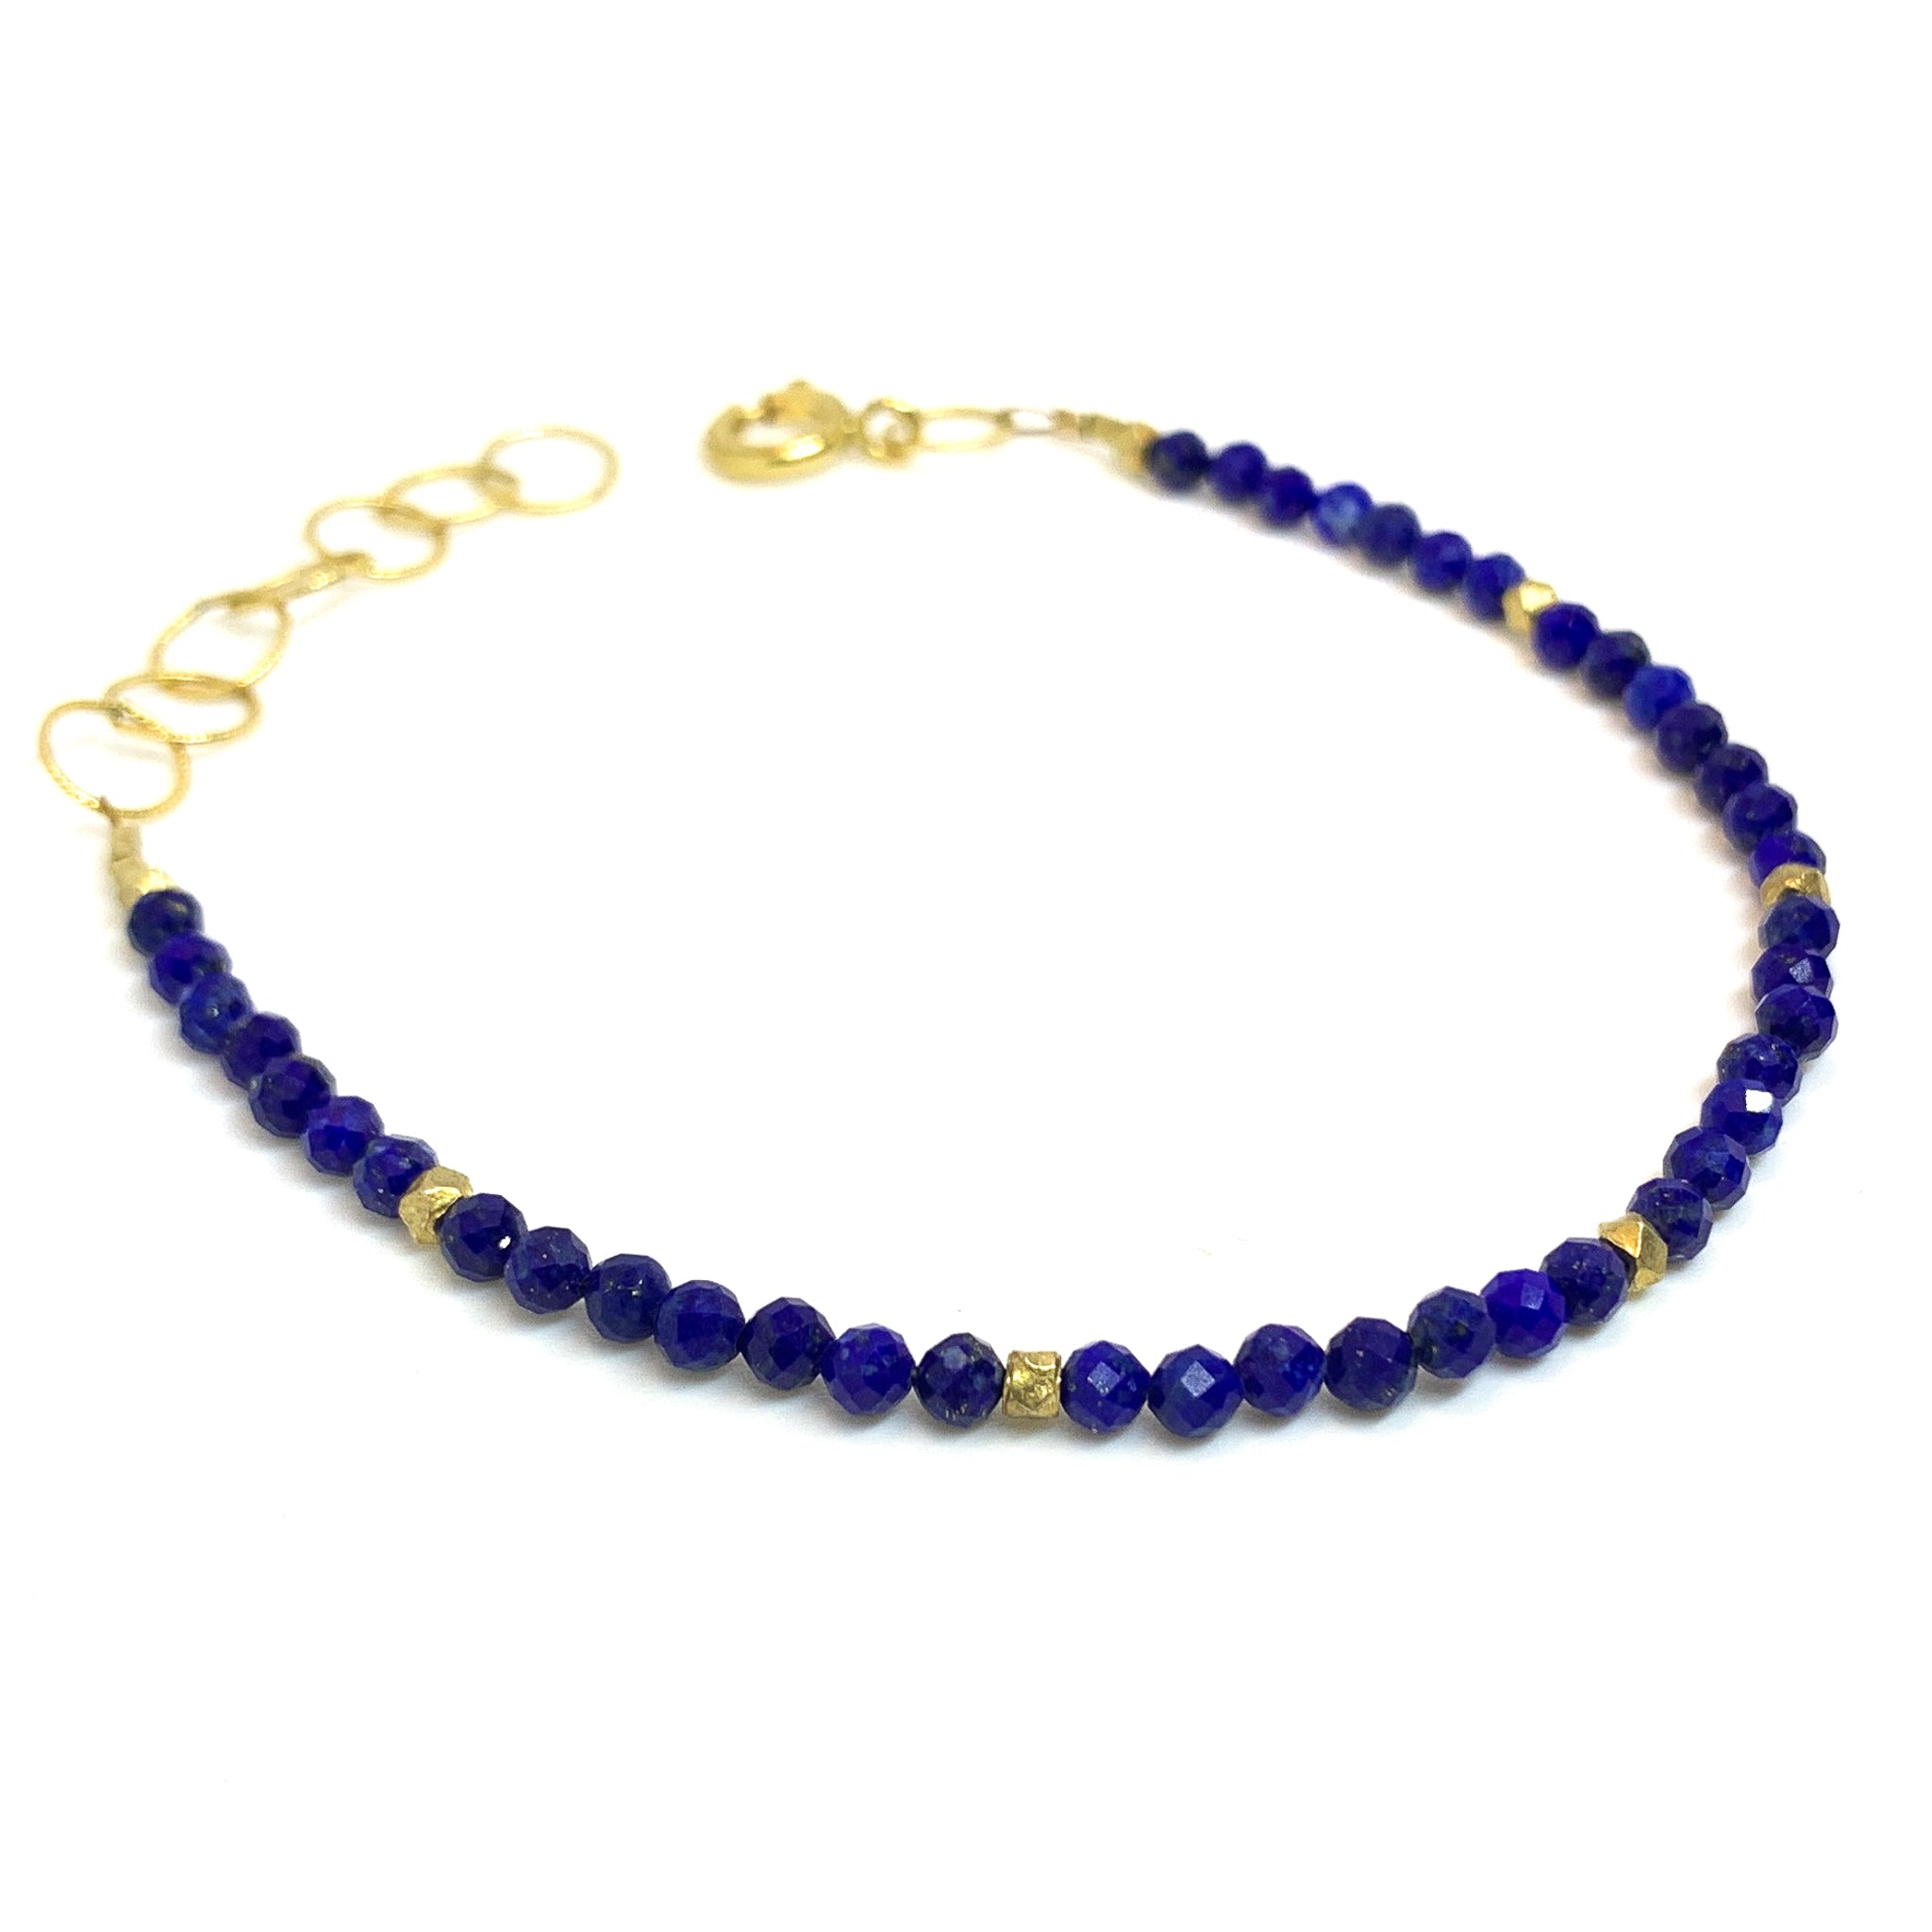 facetted Lapis Lazuli bracelet by eve black jewelry, Hawaii